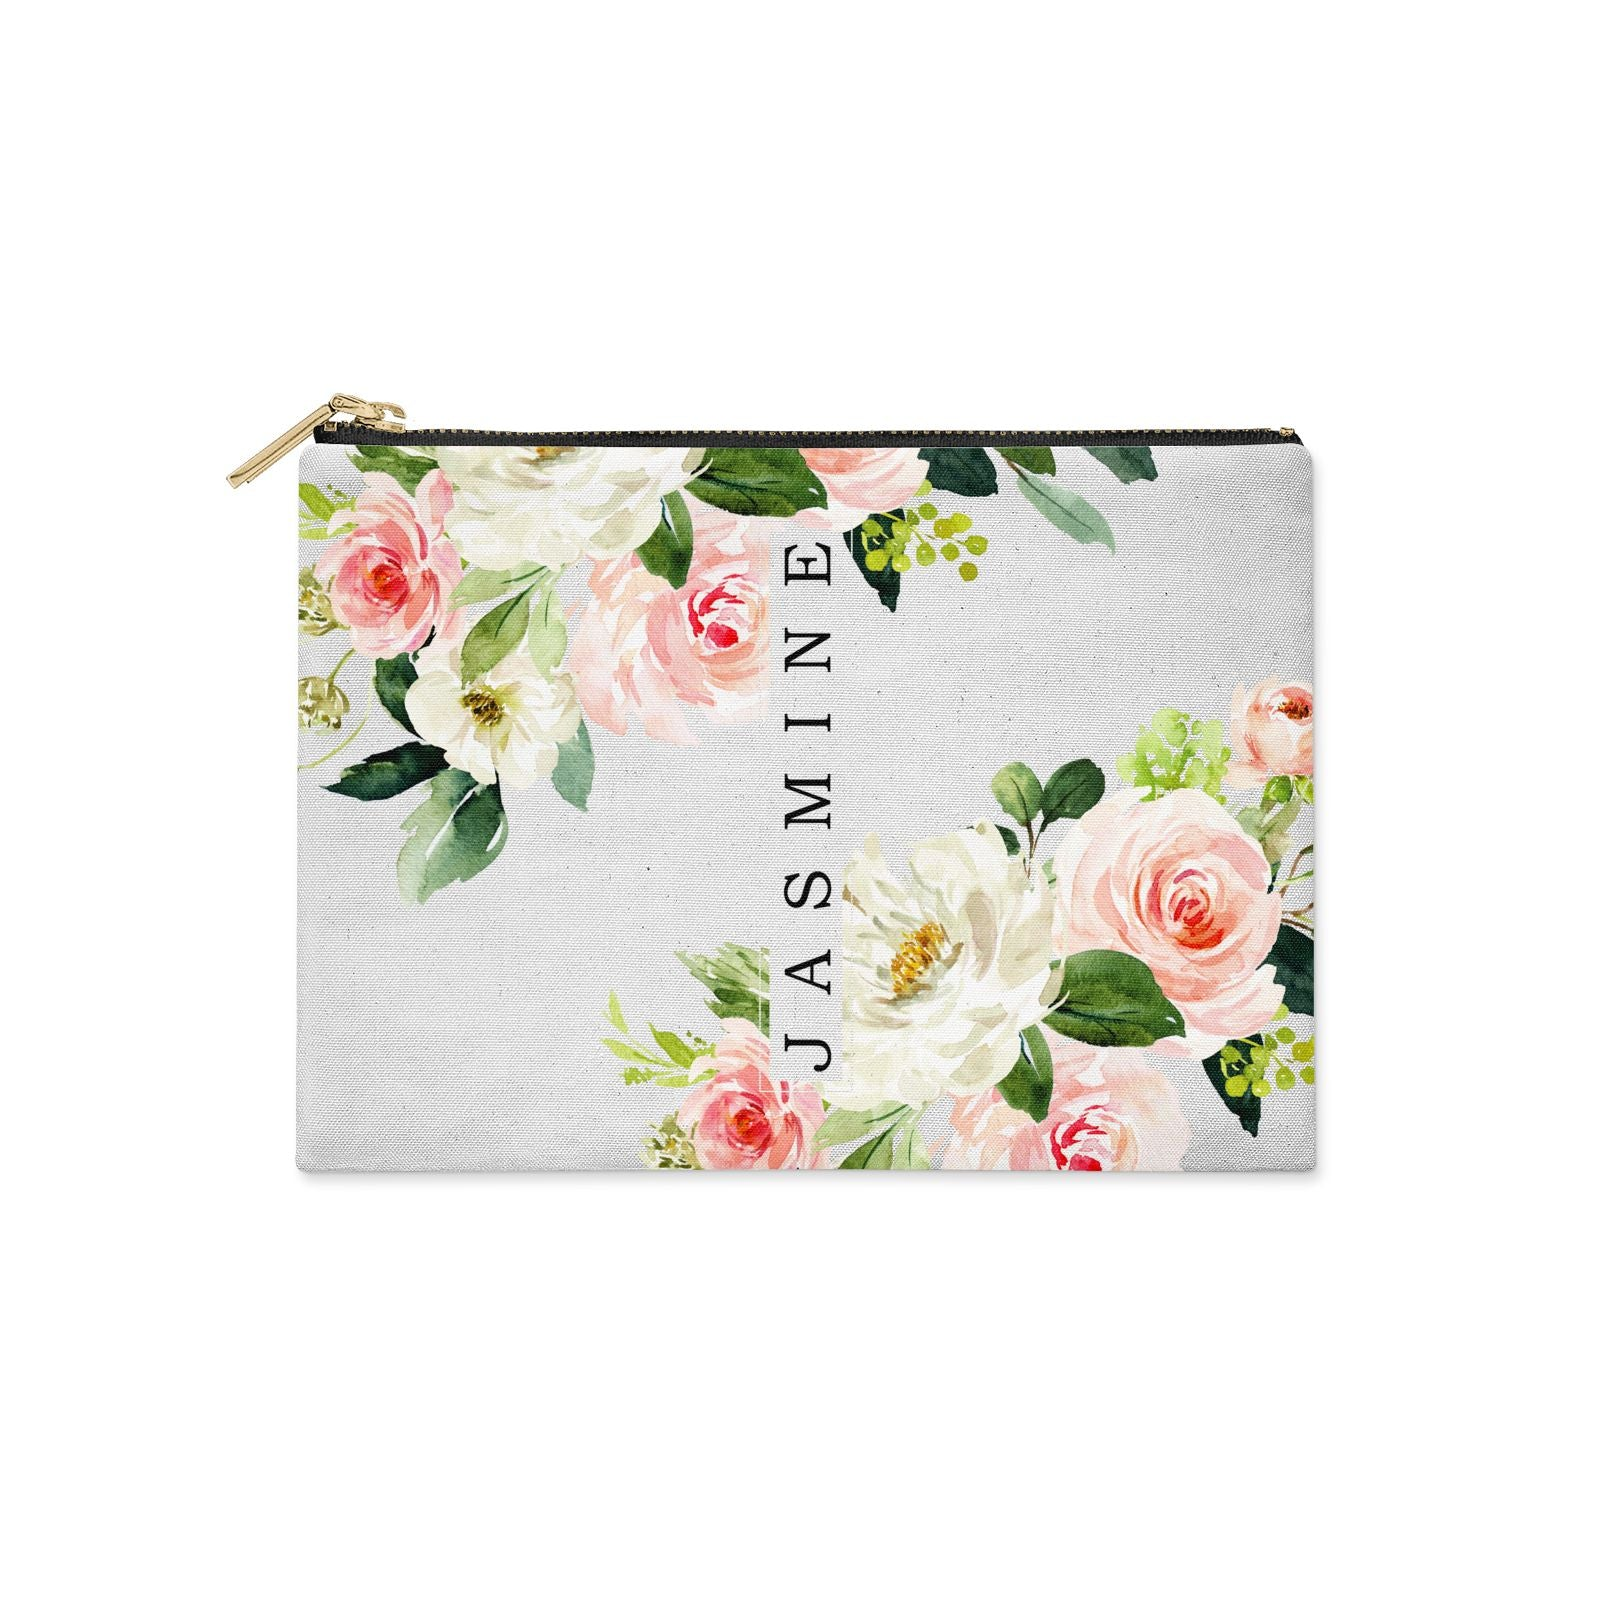 Personalised Floral Wreath with Name Clutch Bag Zipper Pouch